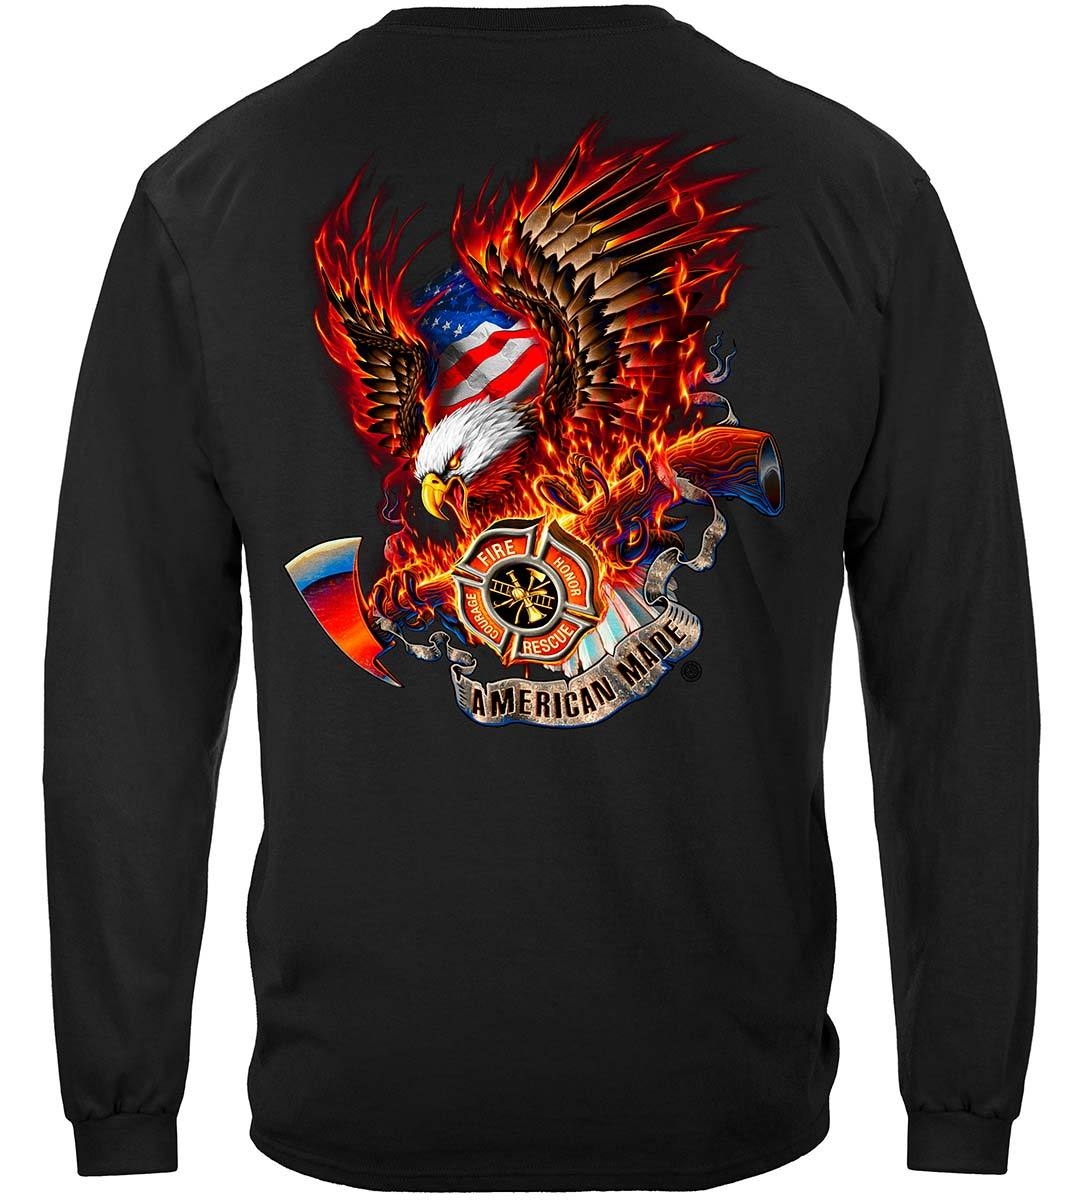 Patriotic Fire Eagle American Made Premium Long Sleeves